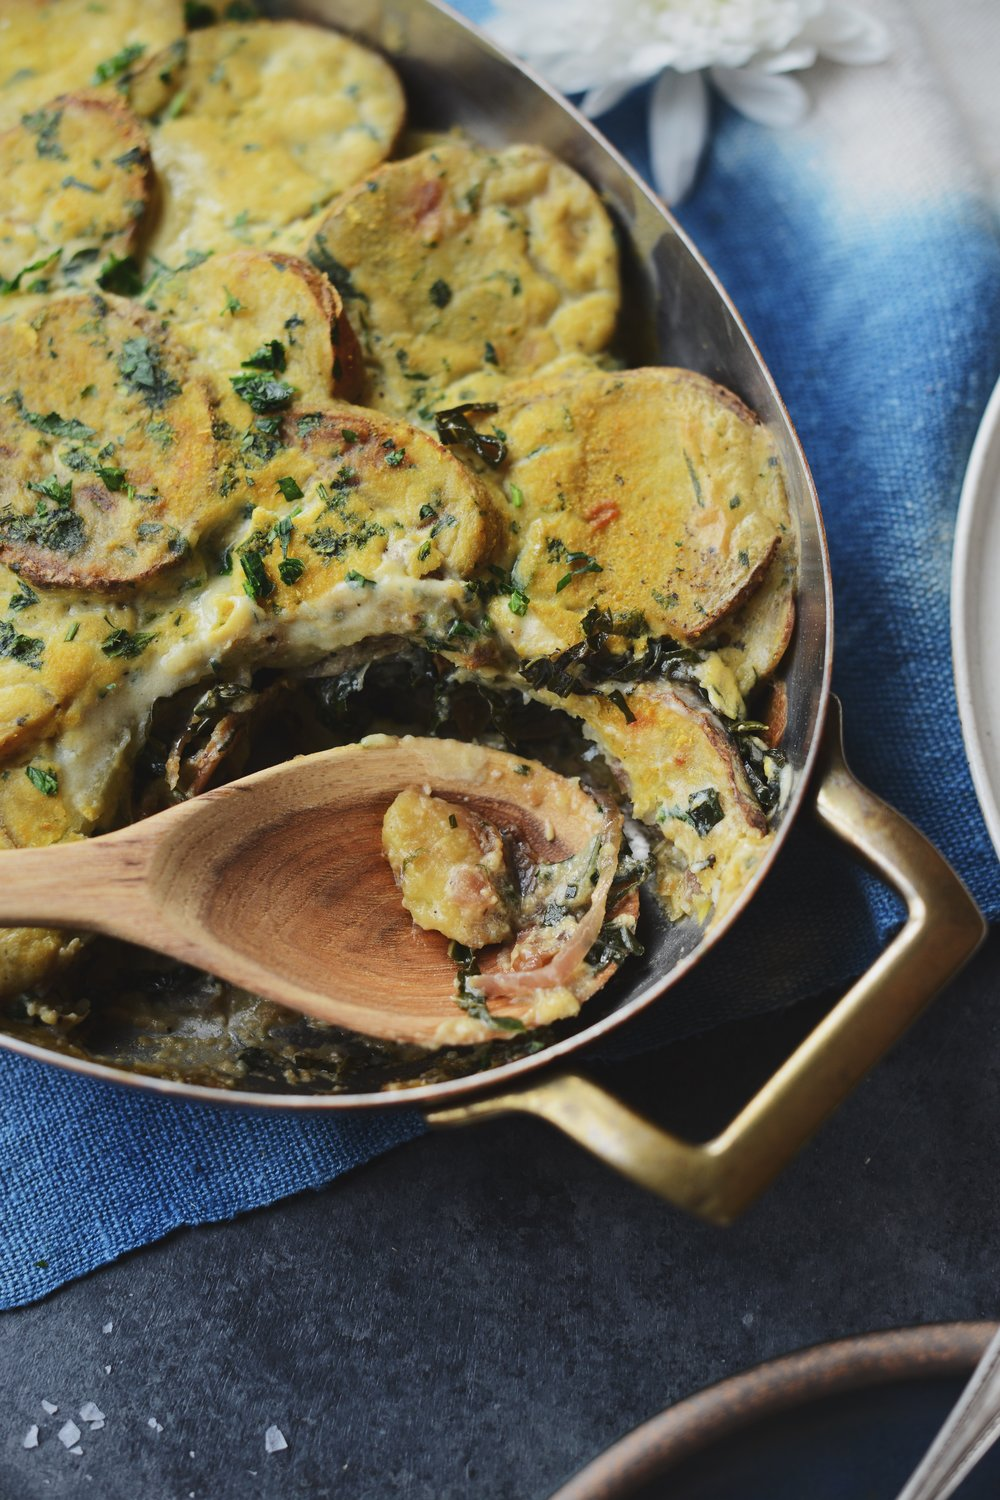 Fare Isle | Vegan Creamy Layered Potato Kale & Caramelized Onion Bake